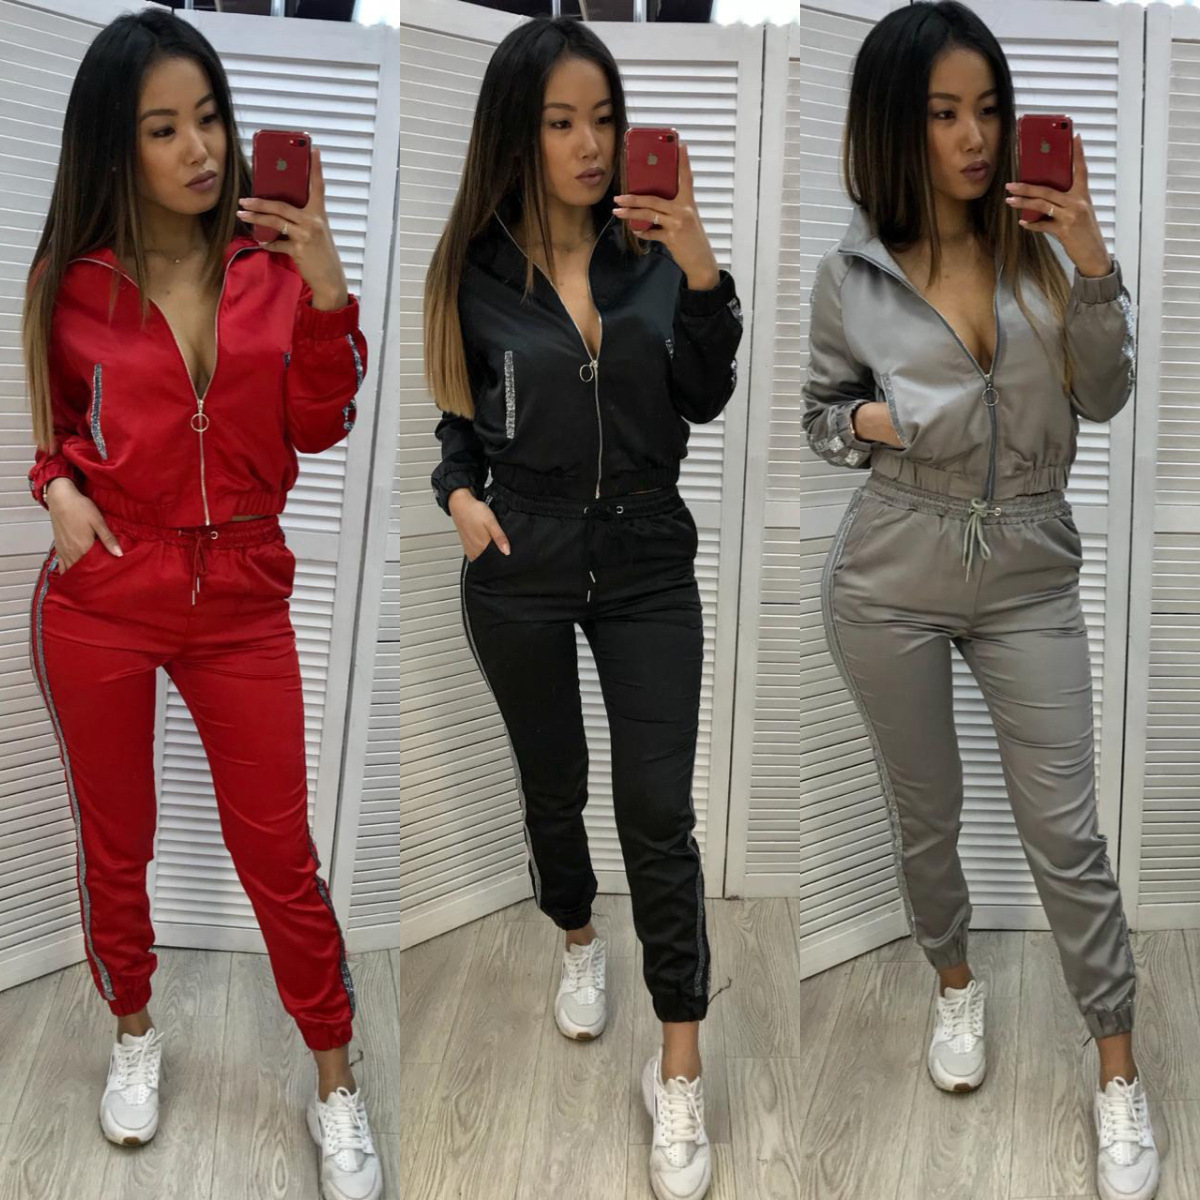 2020 New Women Two Piece Set Winter Sports Suits For Women Office Lady Loose Casual Female Zipper Sports Suit Fashion Tracksuits